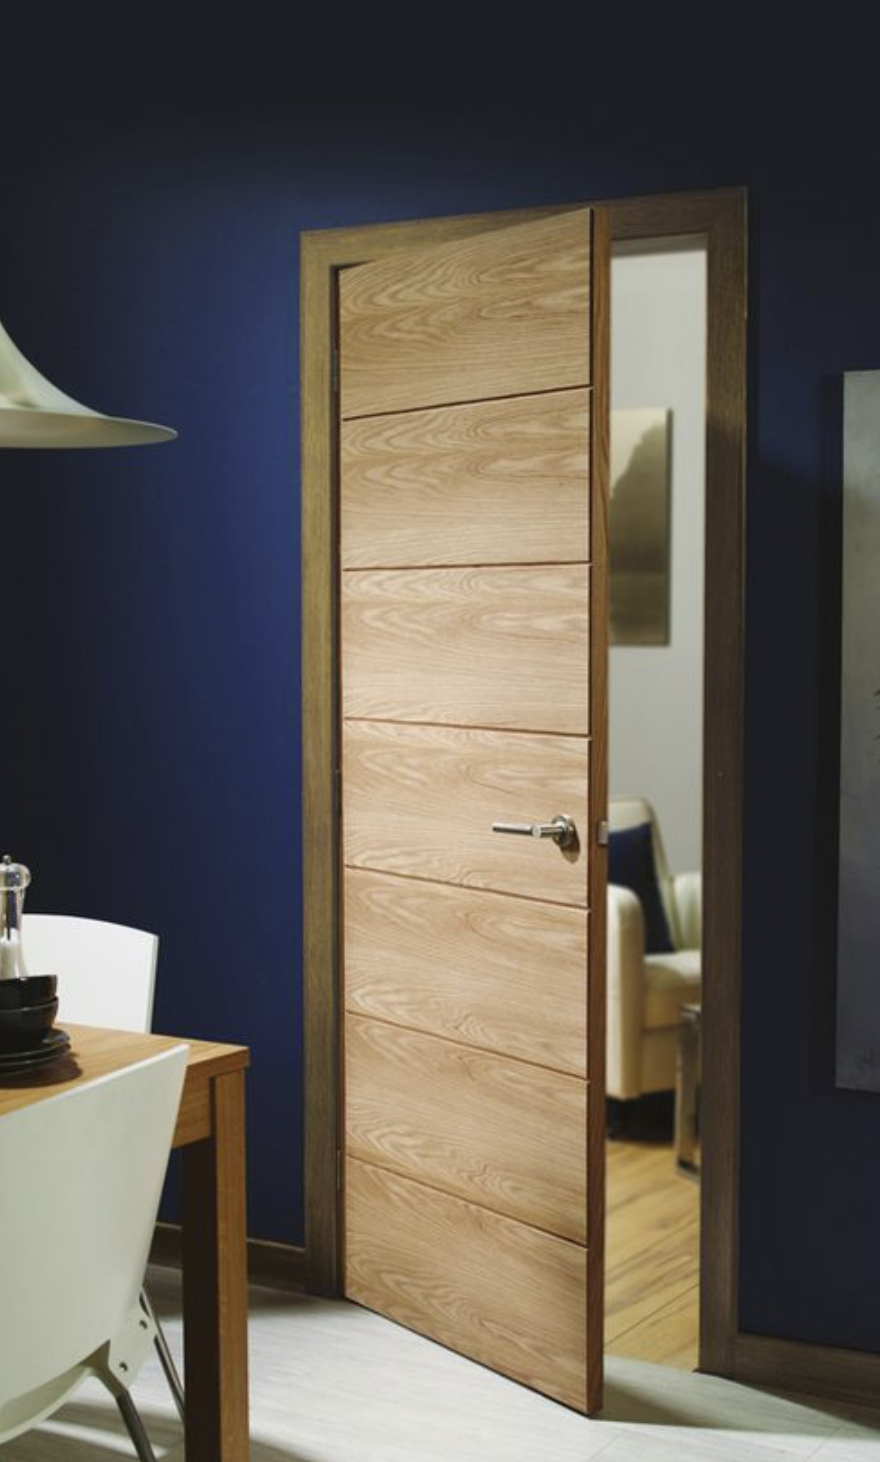 Horizontal flat panels in light oak look very contemporary and elegant